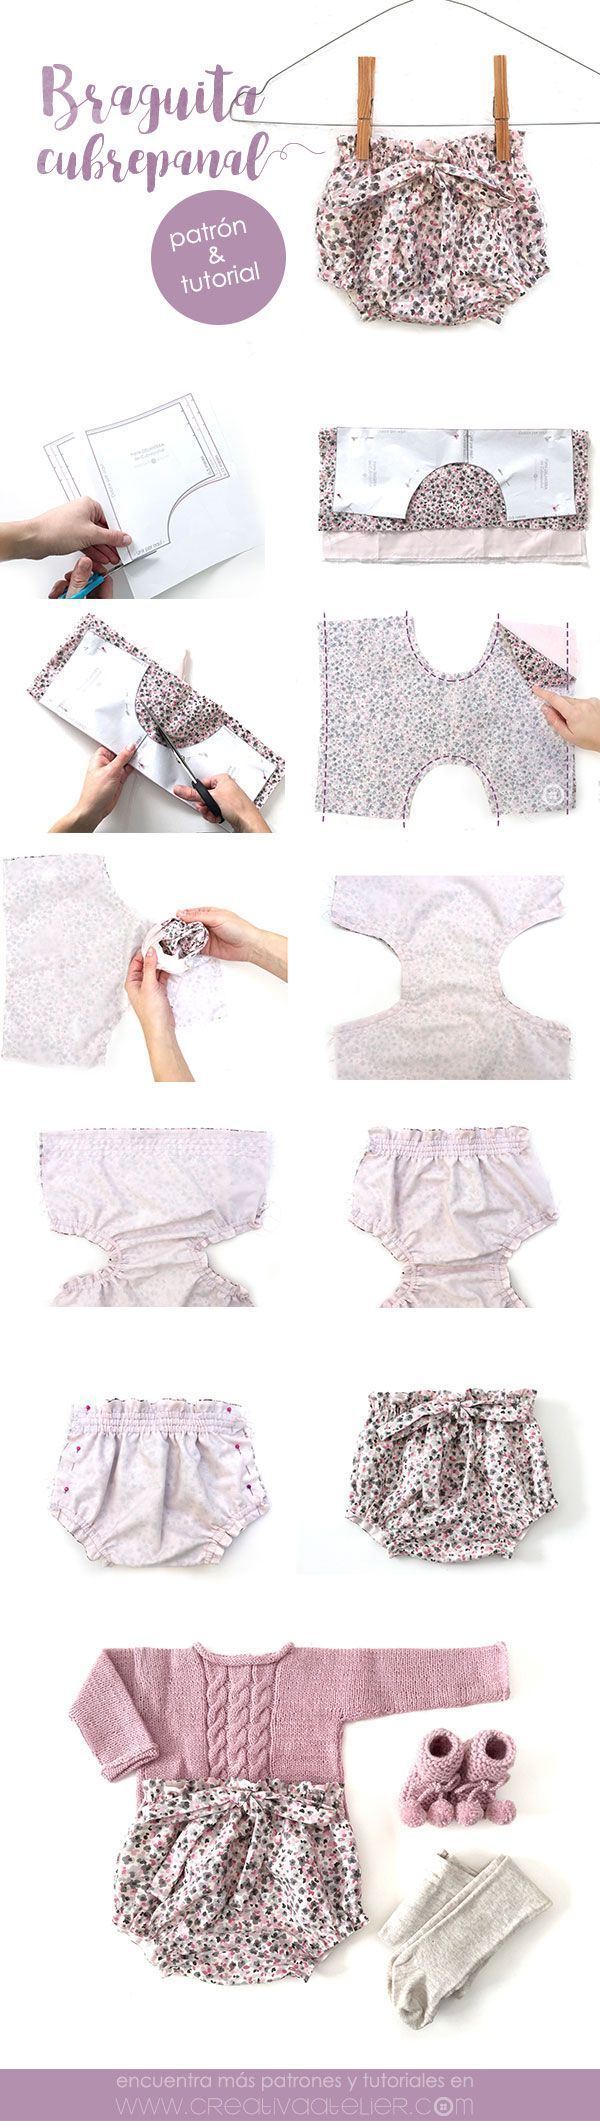 79 best coser a maquina images on Pinterest | Fabric dolls, Owls and ...